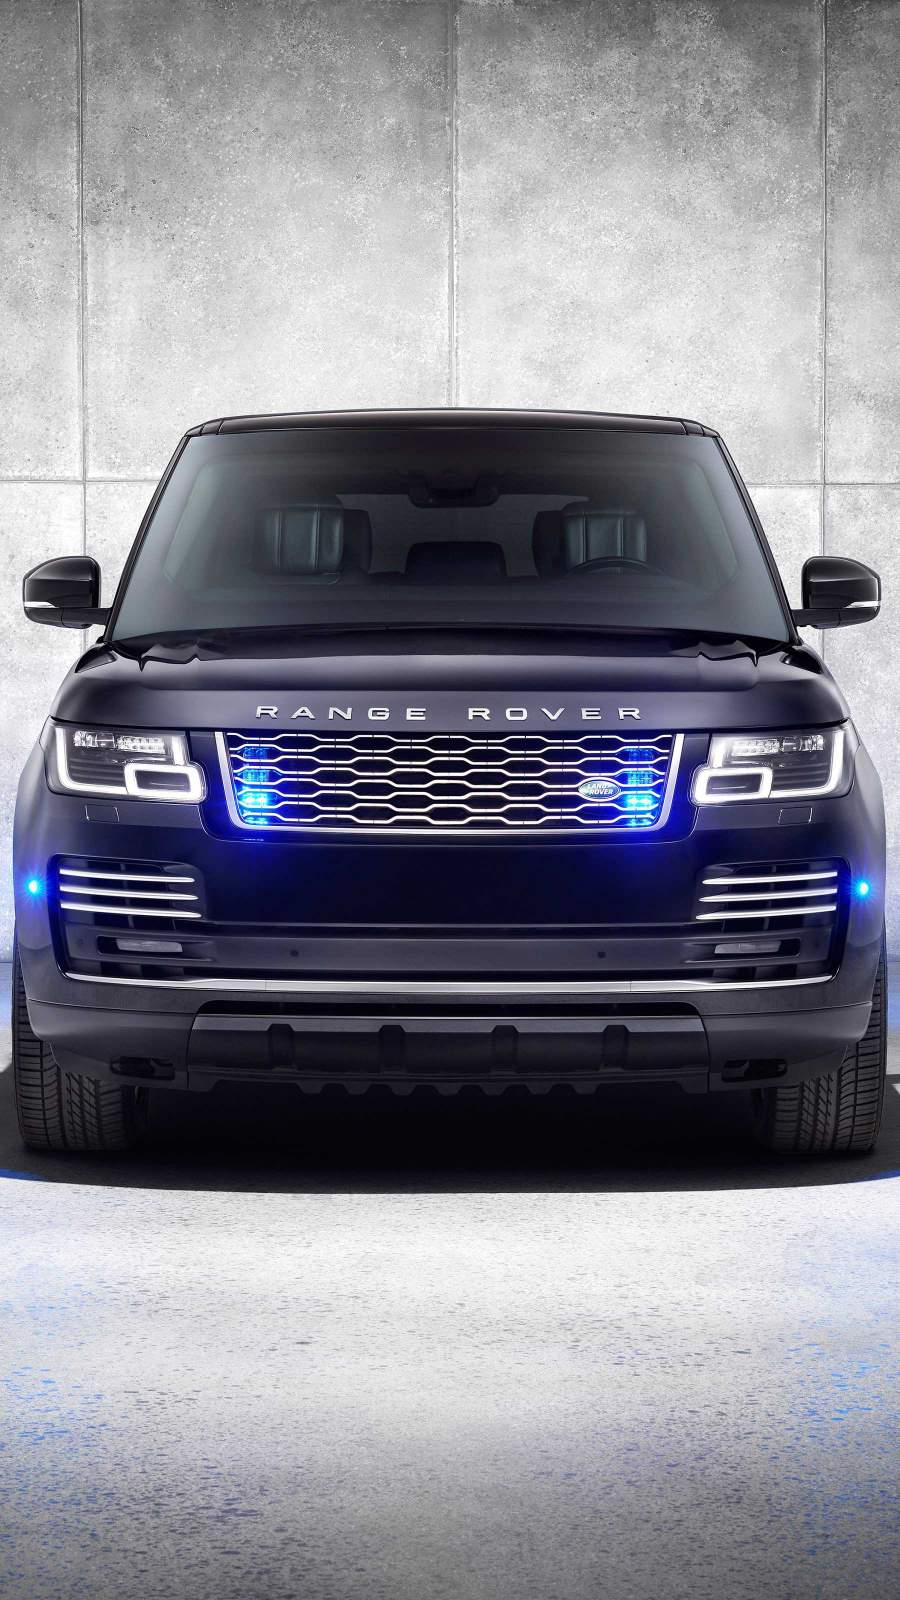 New Range Rover iPhone Wallpaper